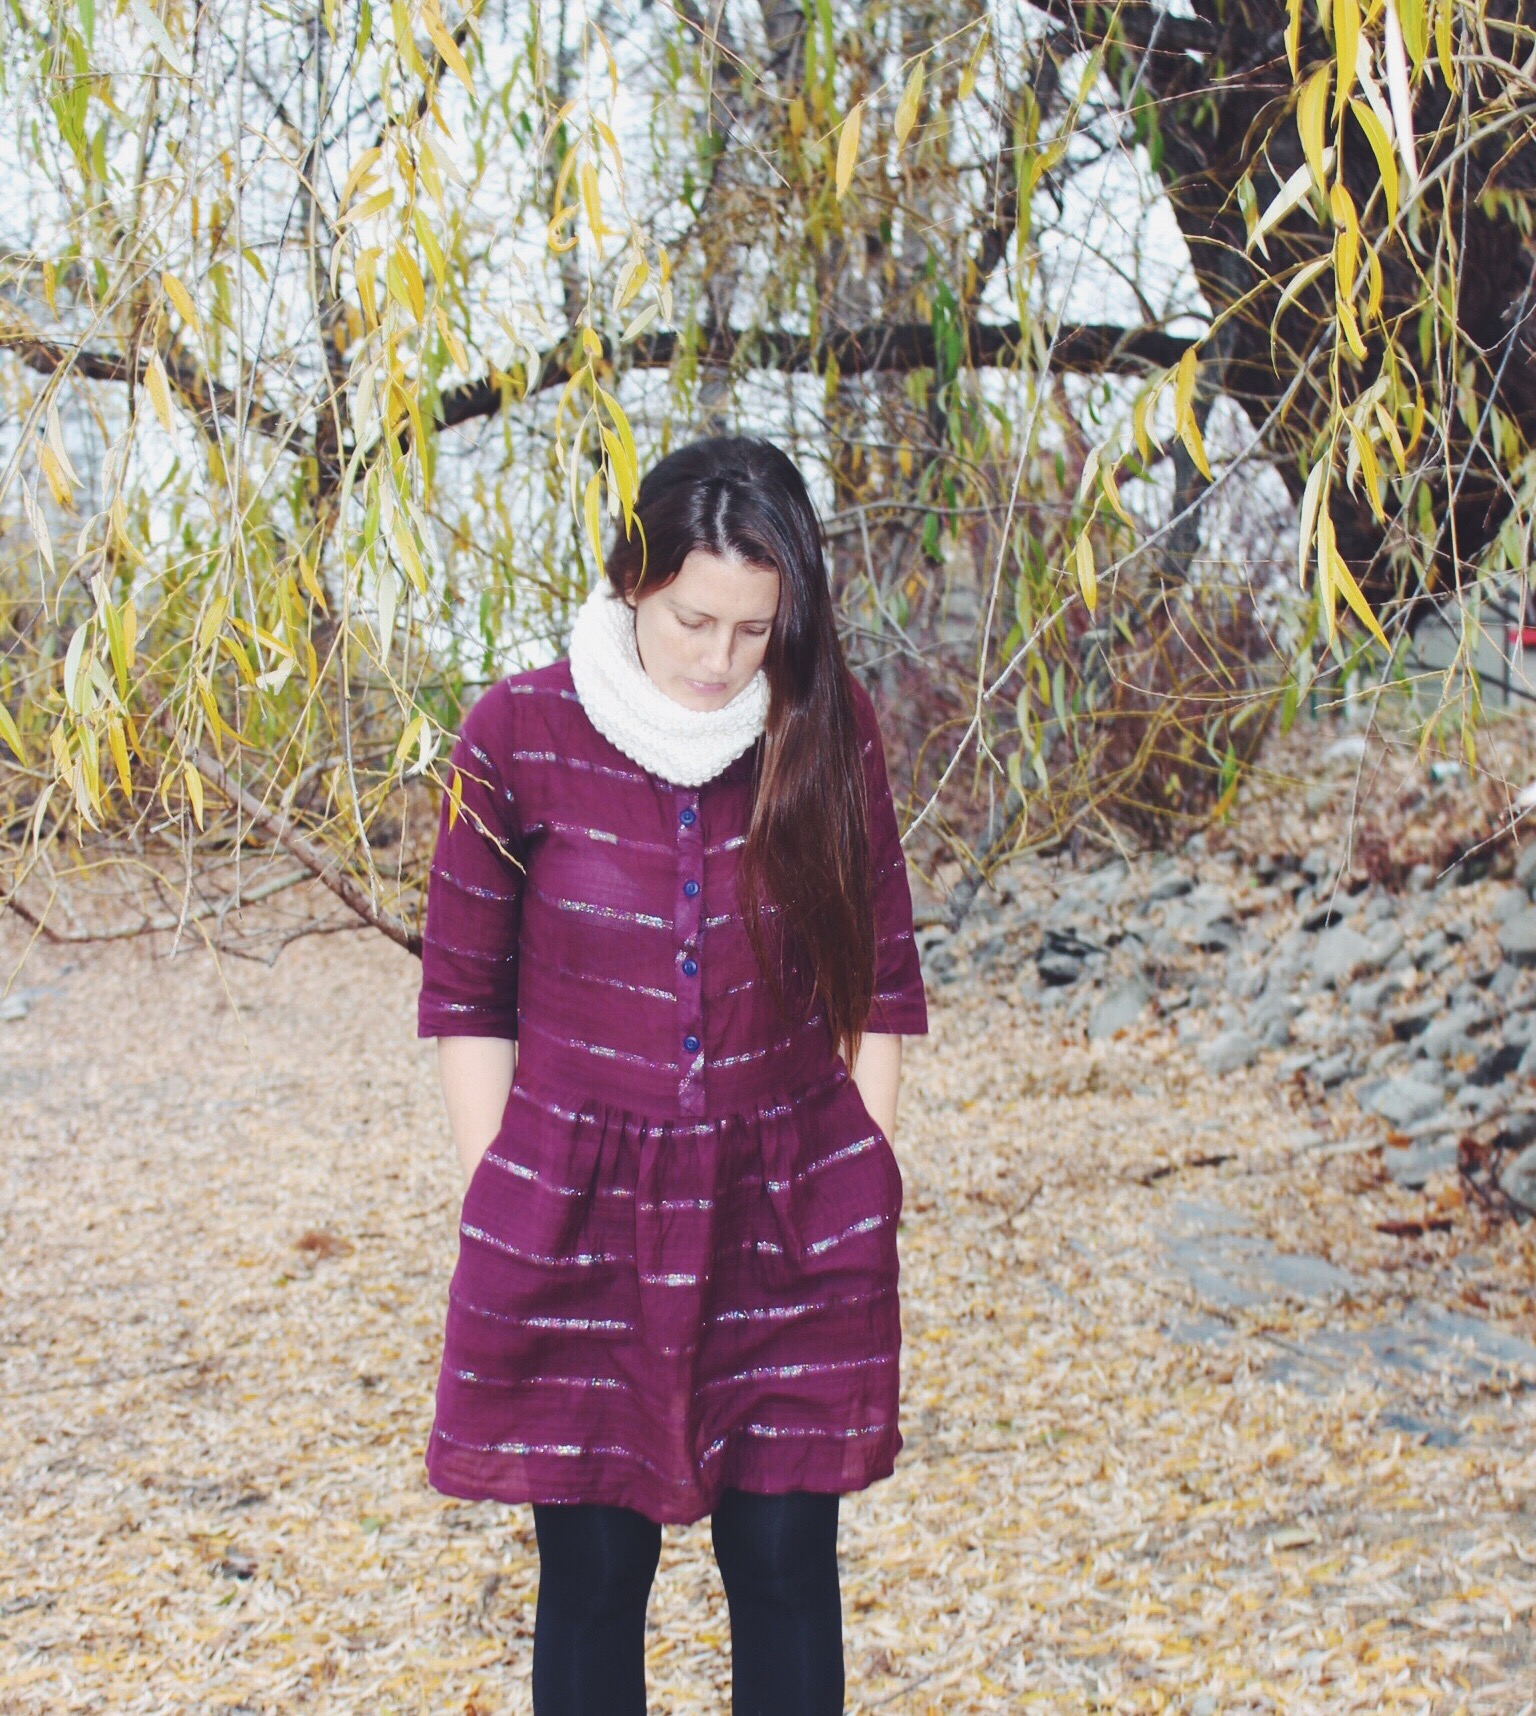 Hippie in Disguise Danielle Chassin Ace & Jig dress Wooln snood